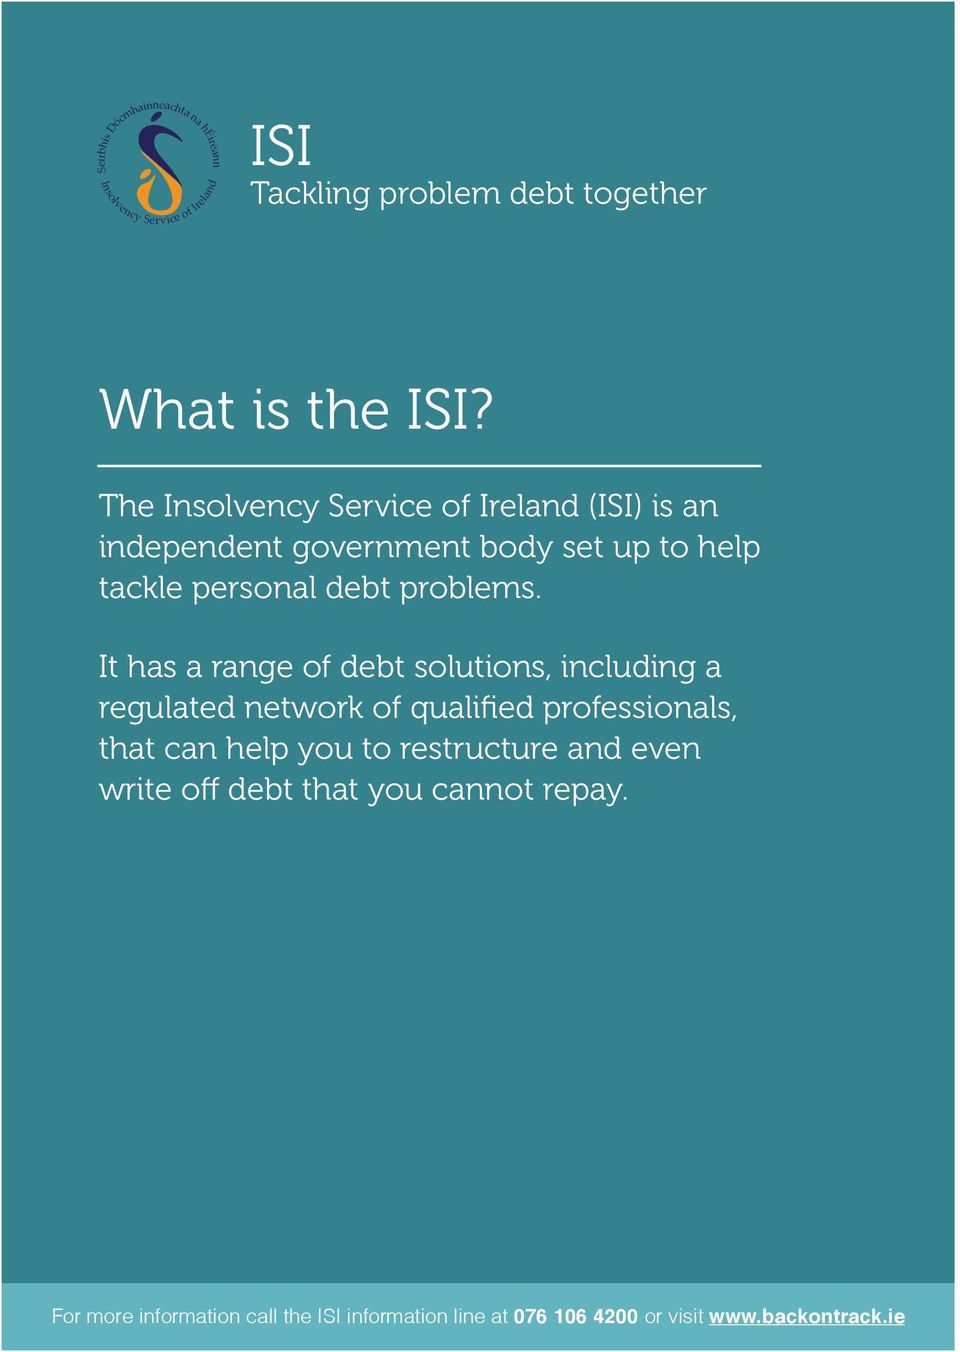 The Insolvency Service of Ireland (ISI) is an independent government body set up to help tackle